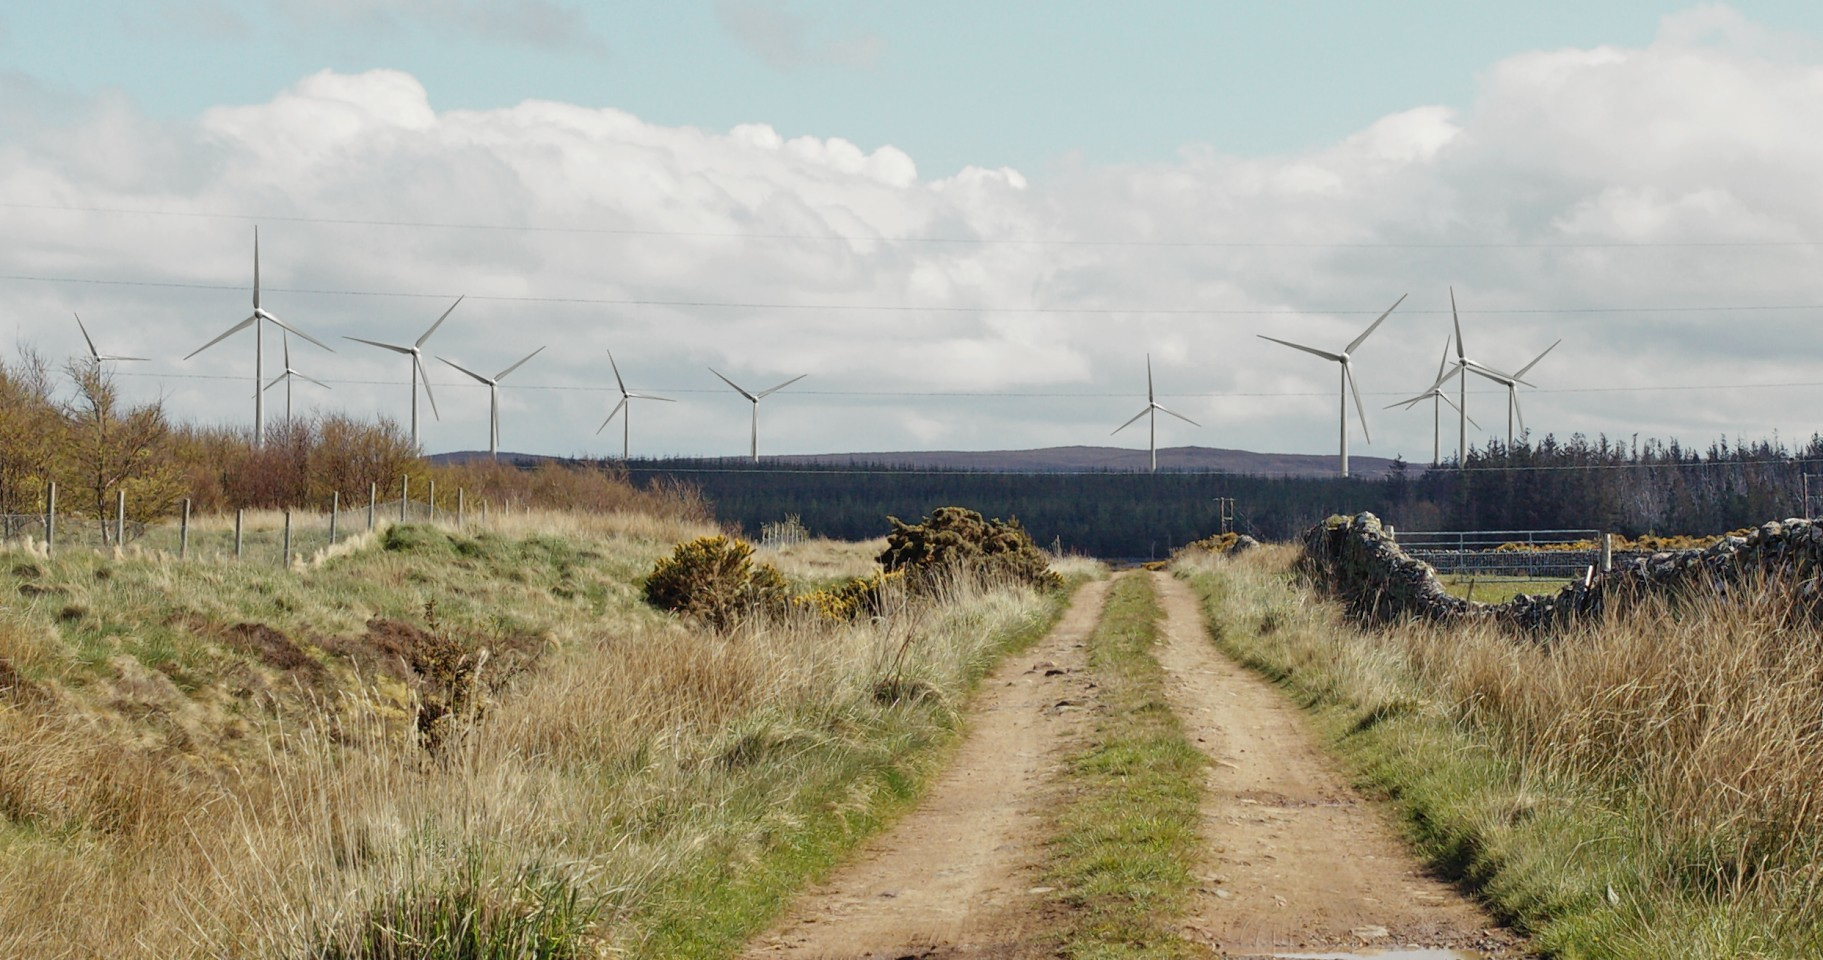 The development would include nine 413ft turbines, and 15 structures of 456ft.